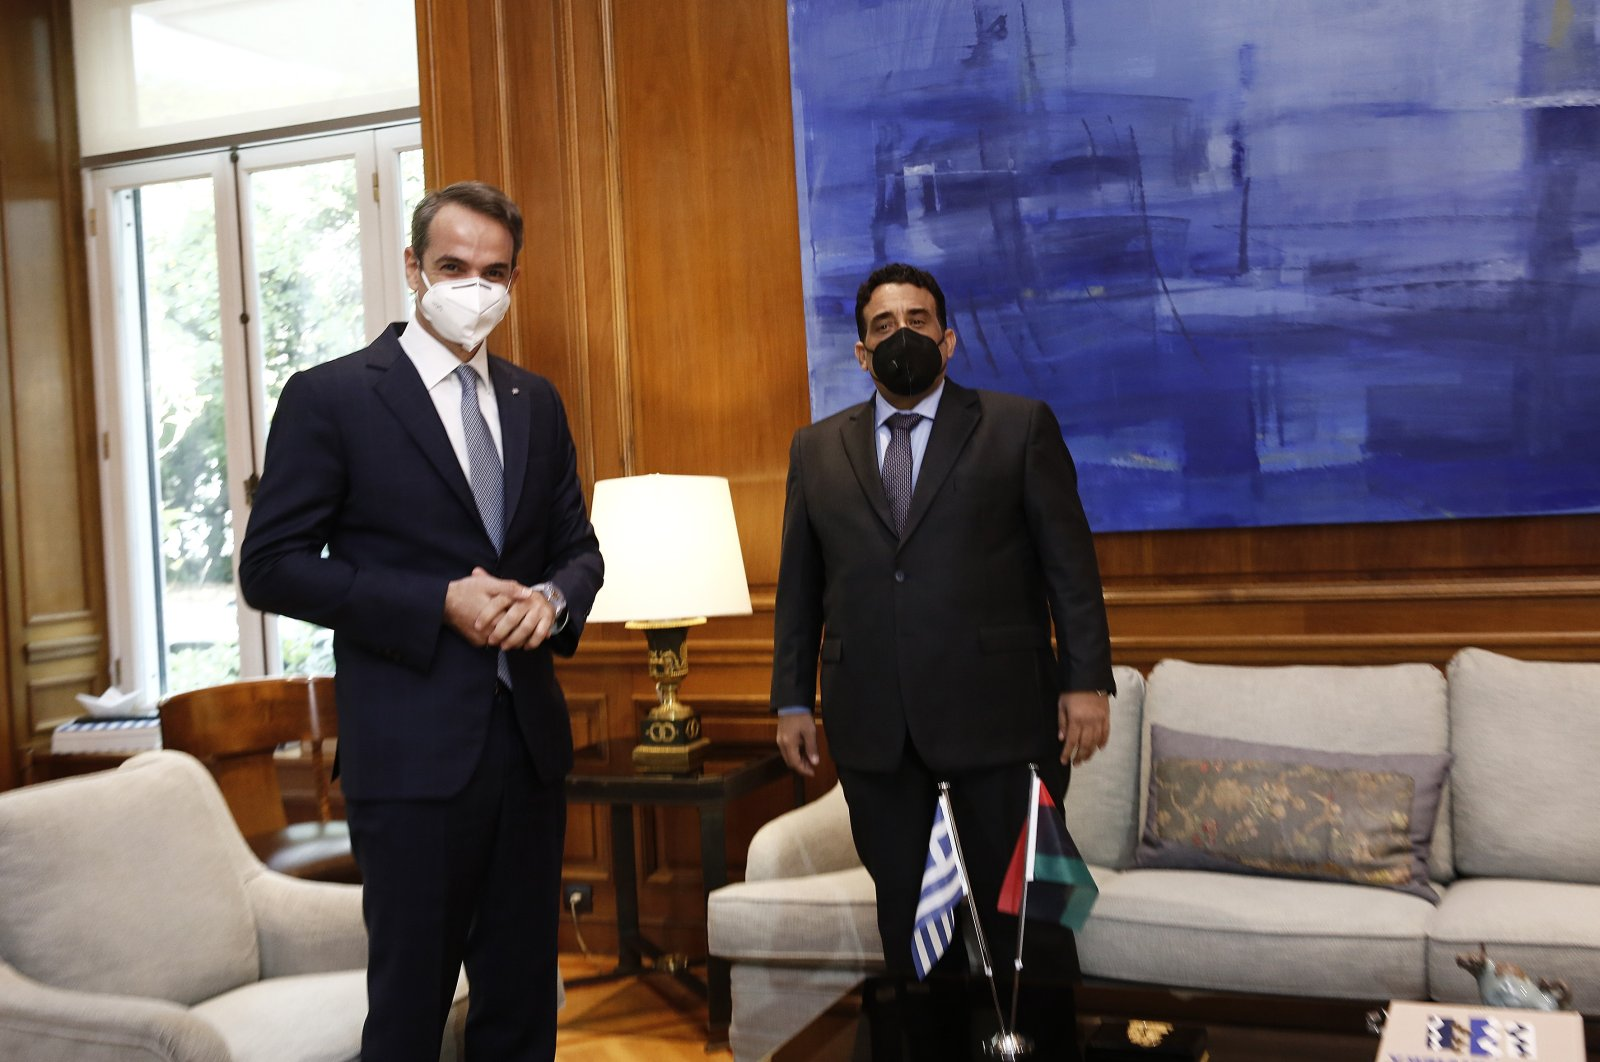 Greek Prime Minister Kyriakos Mitsotakis (L) stands next to the head of Libya's Presidential Council, Mohammad Younes Menfi, during their meeting in Athens, Greece, 14 April 2021. (EPA Photo)